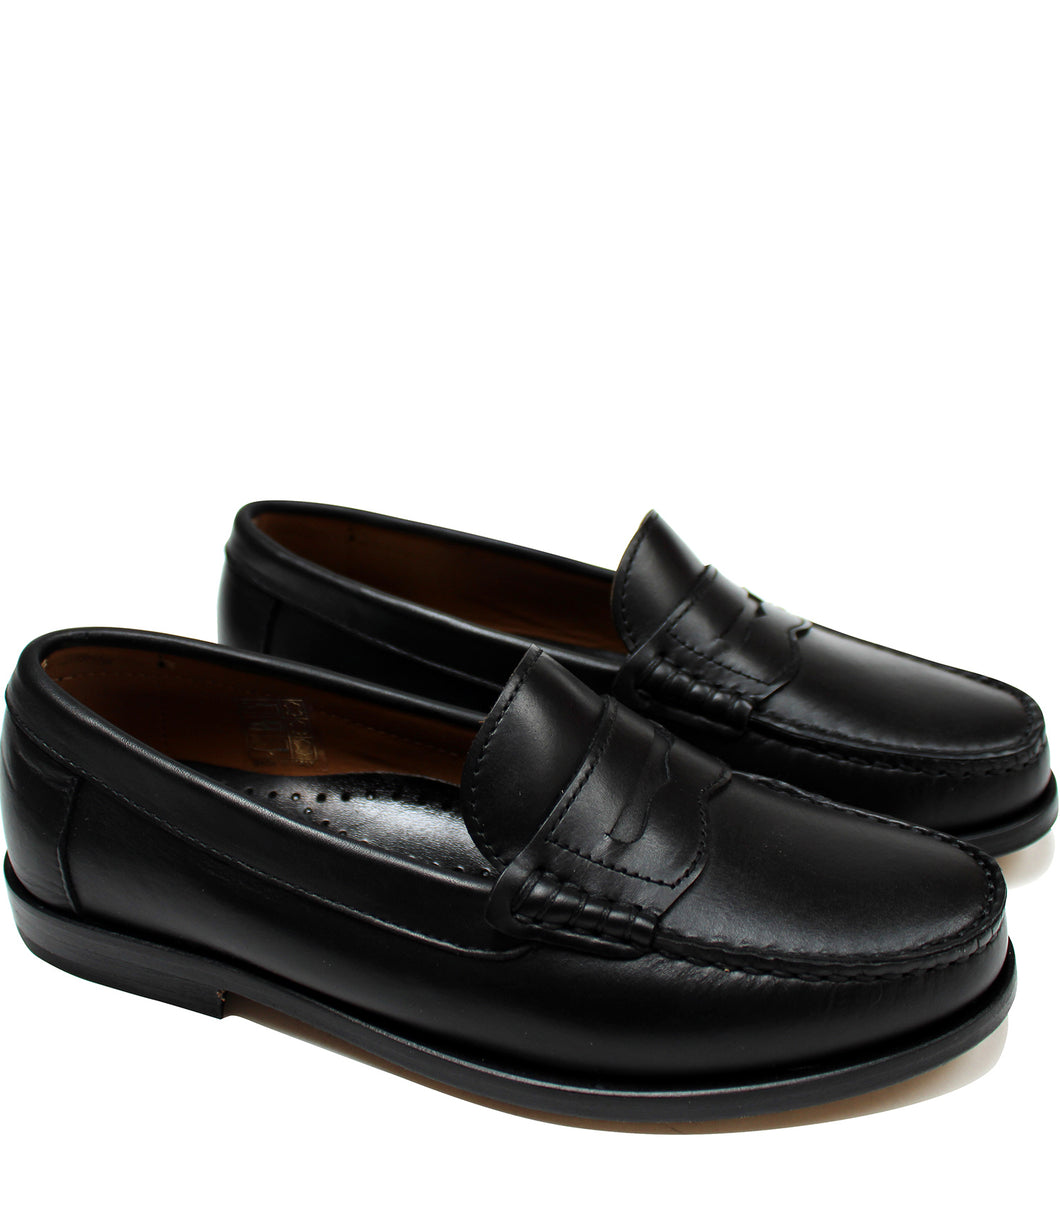 Black loafers in calf leather